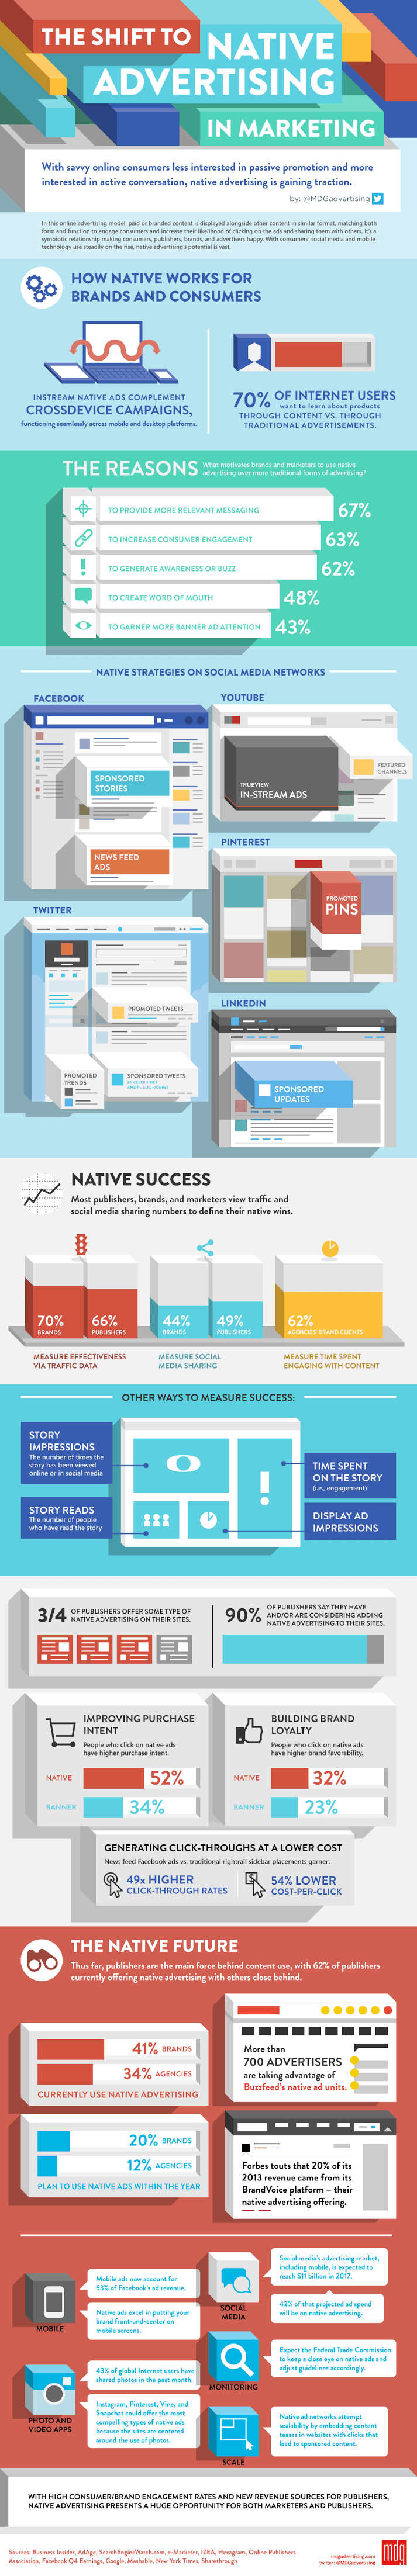 The Shift to Native Advertising for Publishers